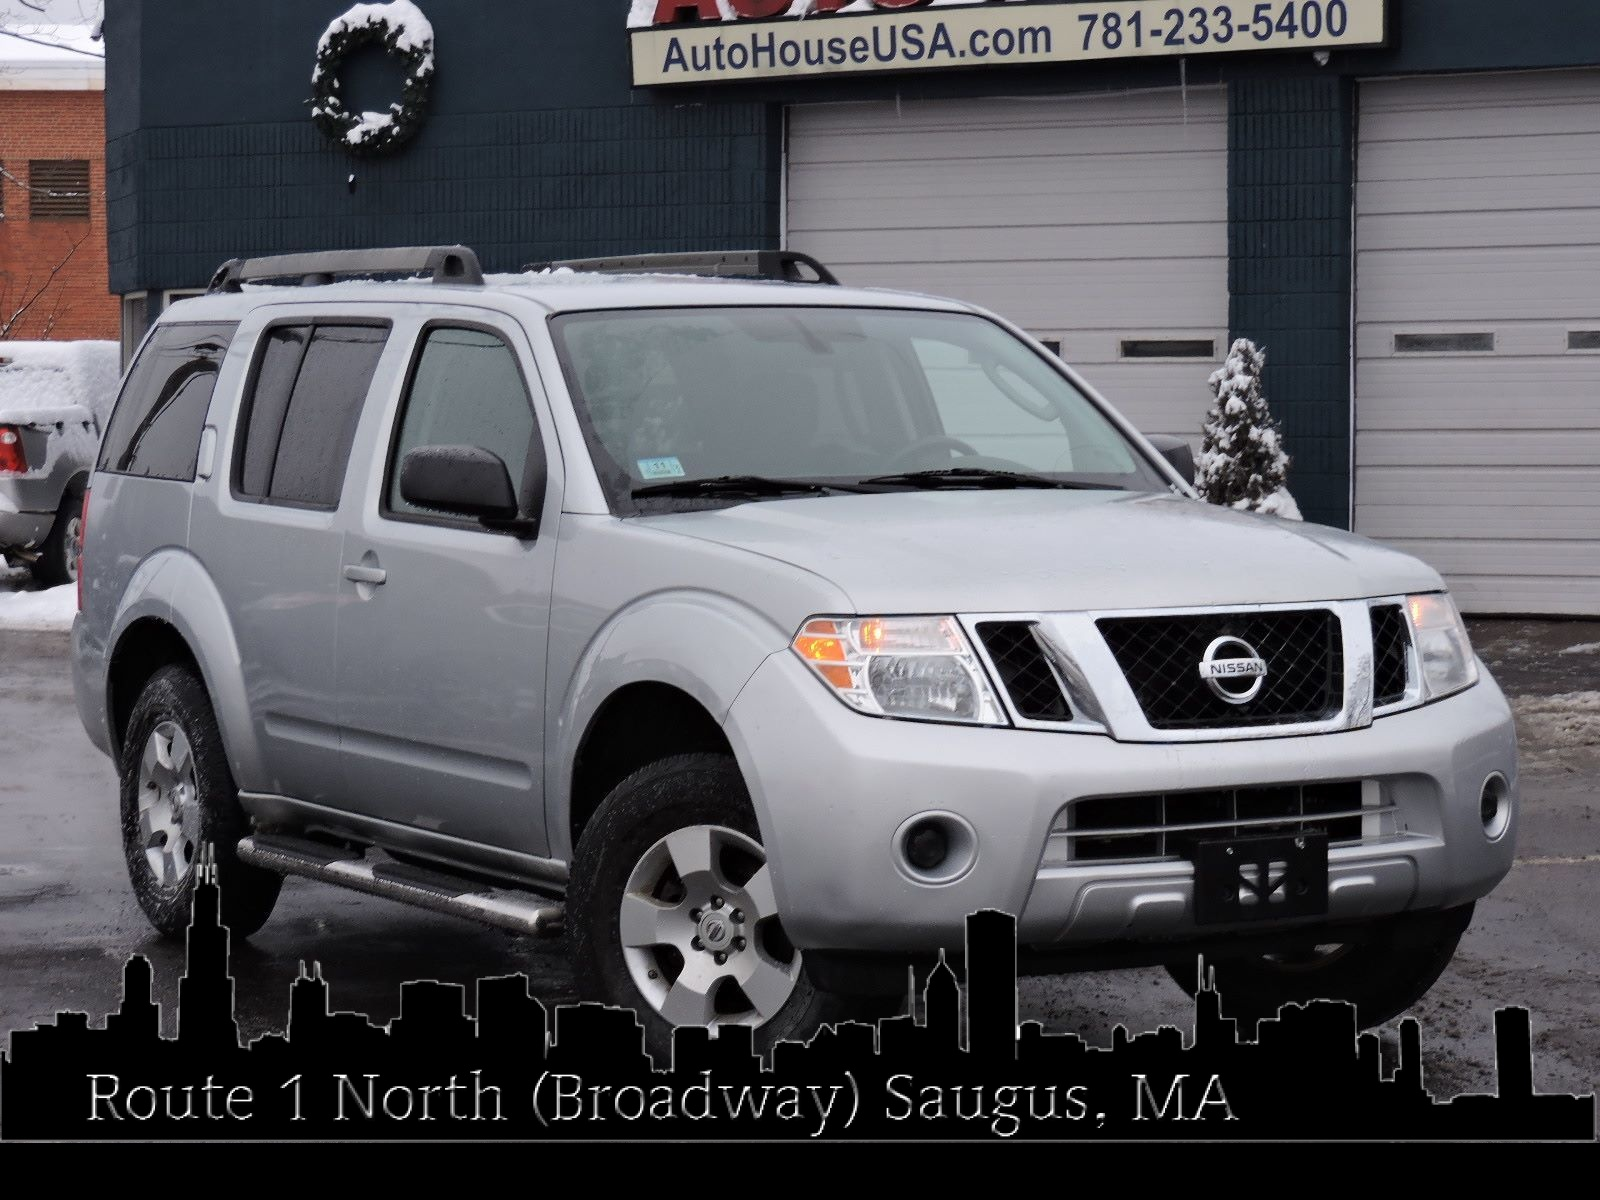 2011 Nissan Pathfinder - All Wheel Drive